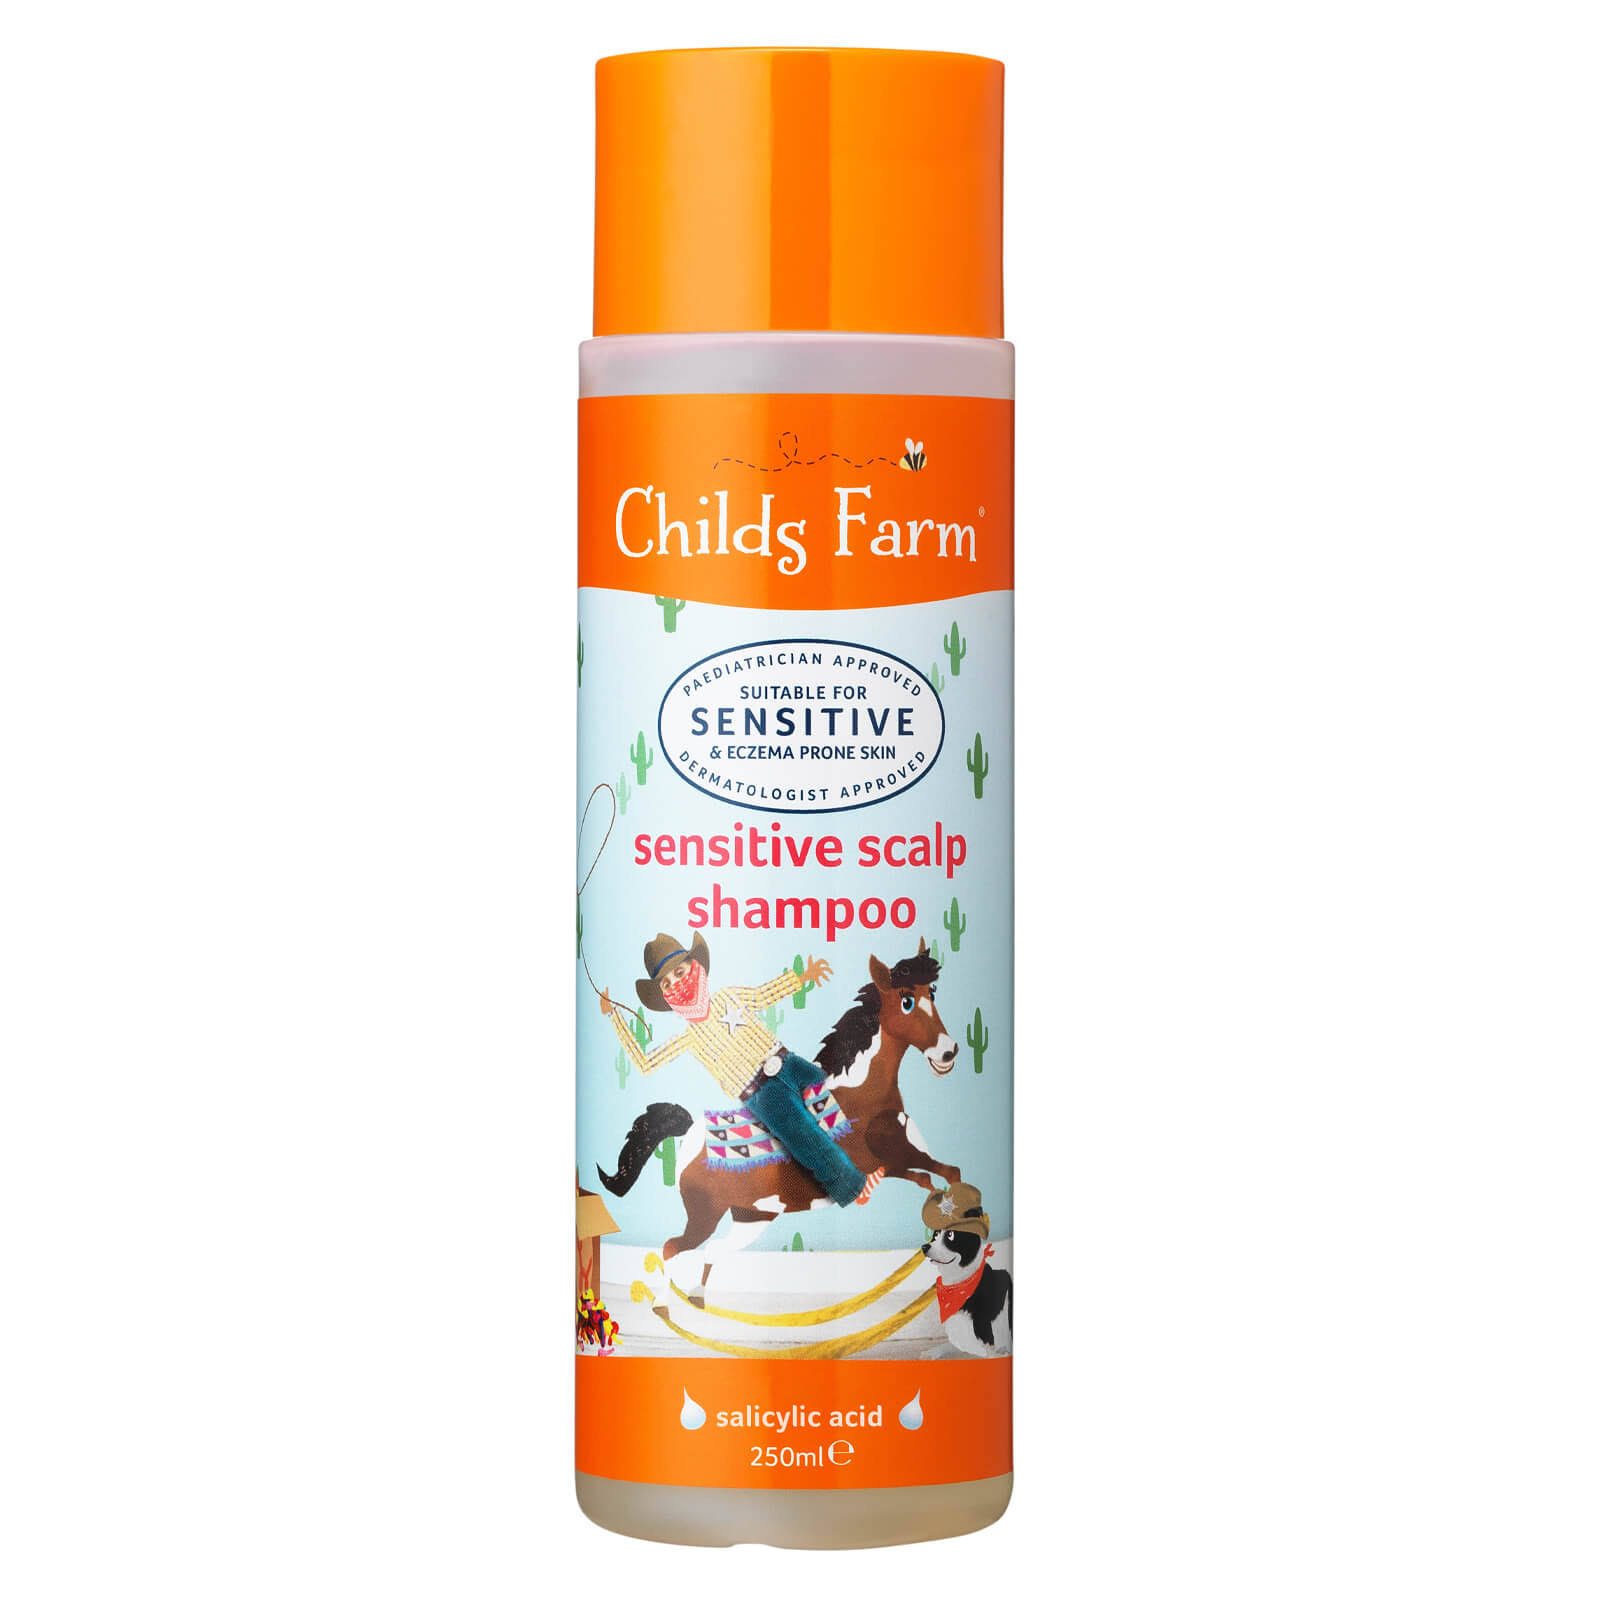 Childs Farm Sensitive Scalp Shampoo - Unfragranced, 250ml